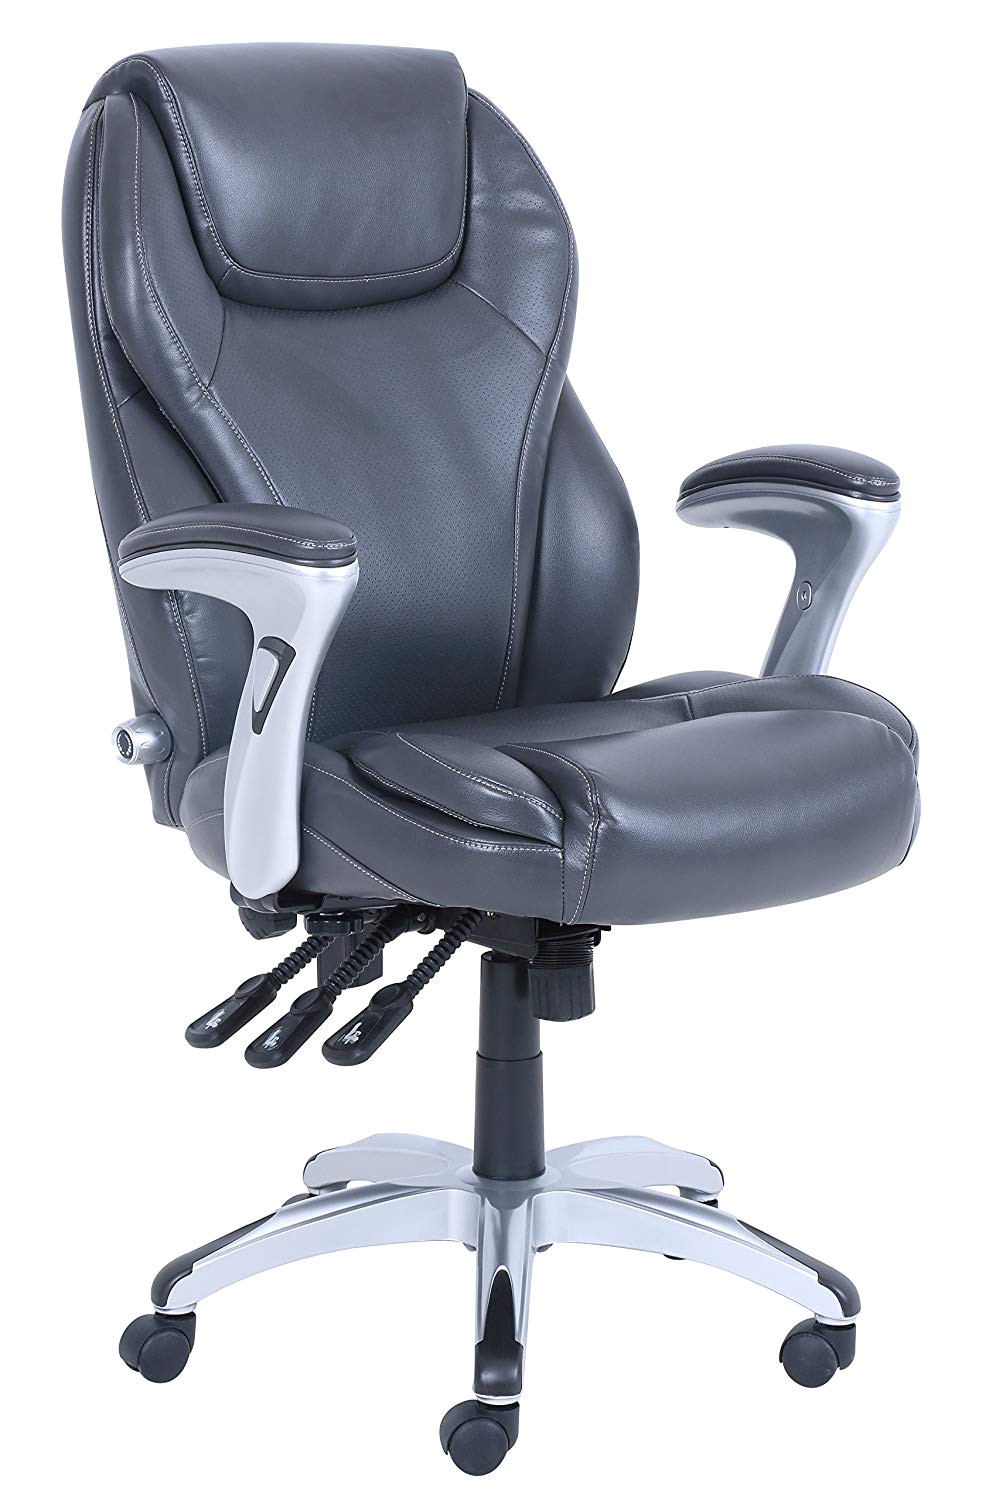 amazon com serta chr10054a ergo executive office chair gray kitchen dining